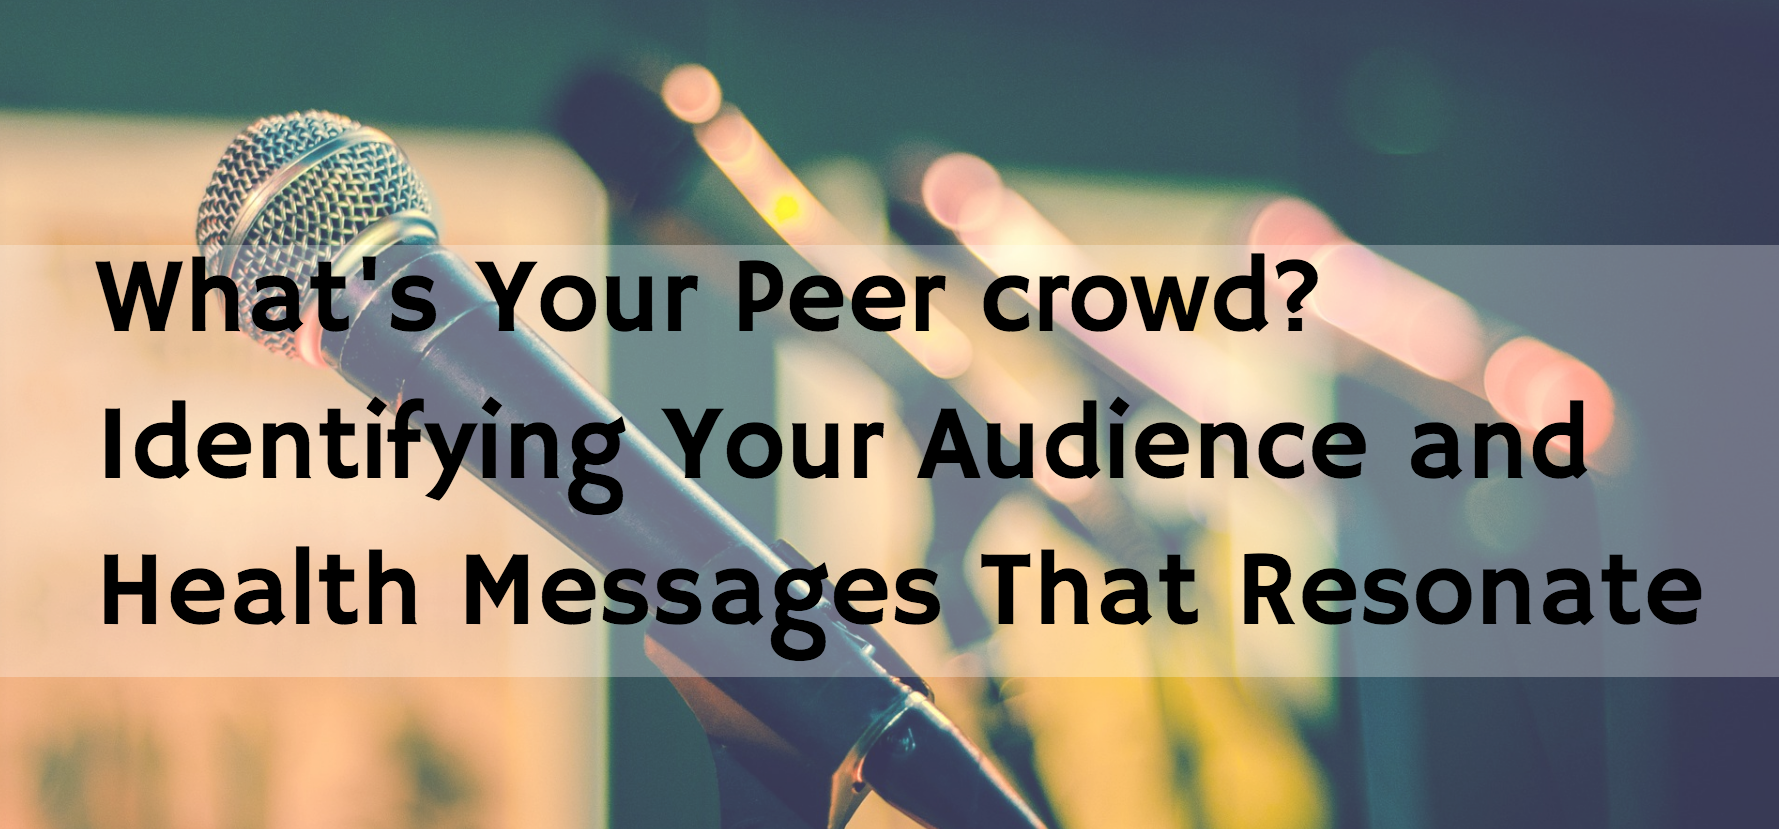 What's Your Peer Crowd? Identifying Your Audience and Health Messages That Resonate graphic